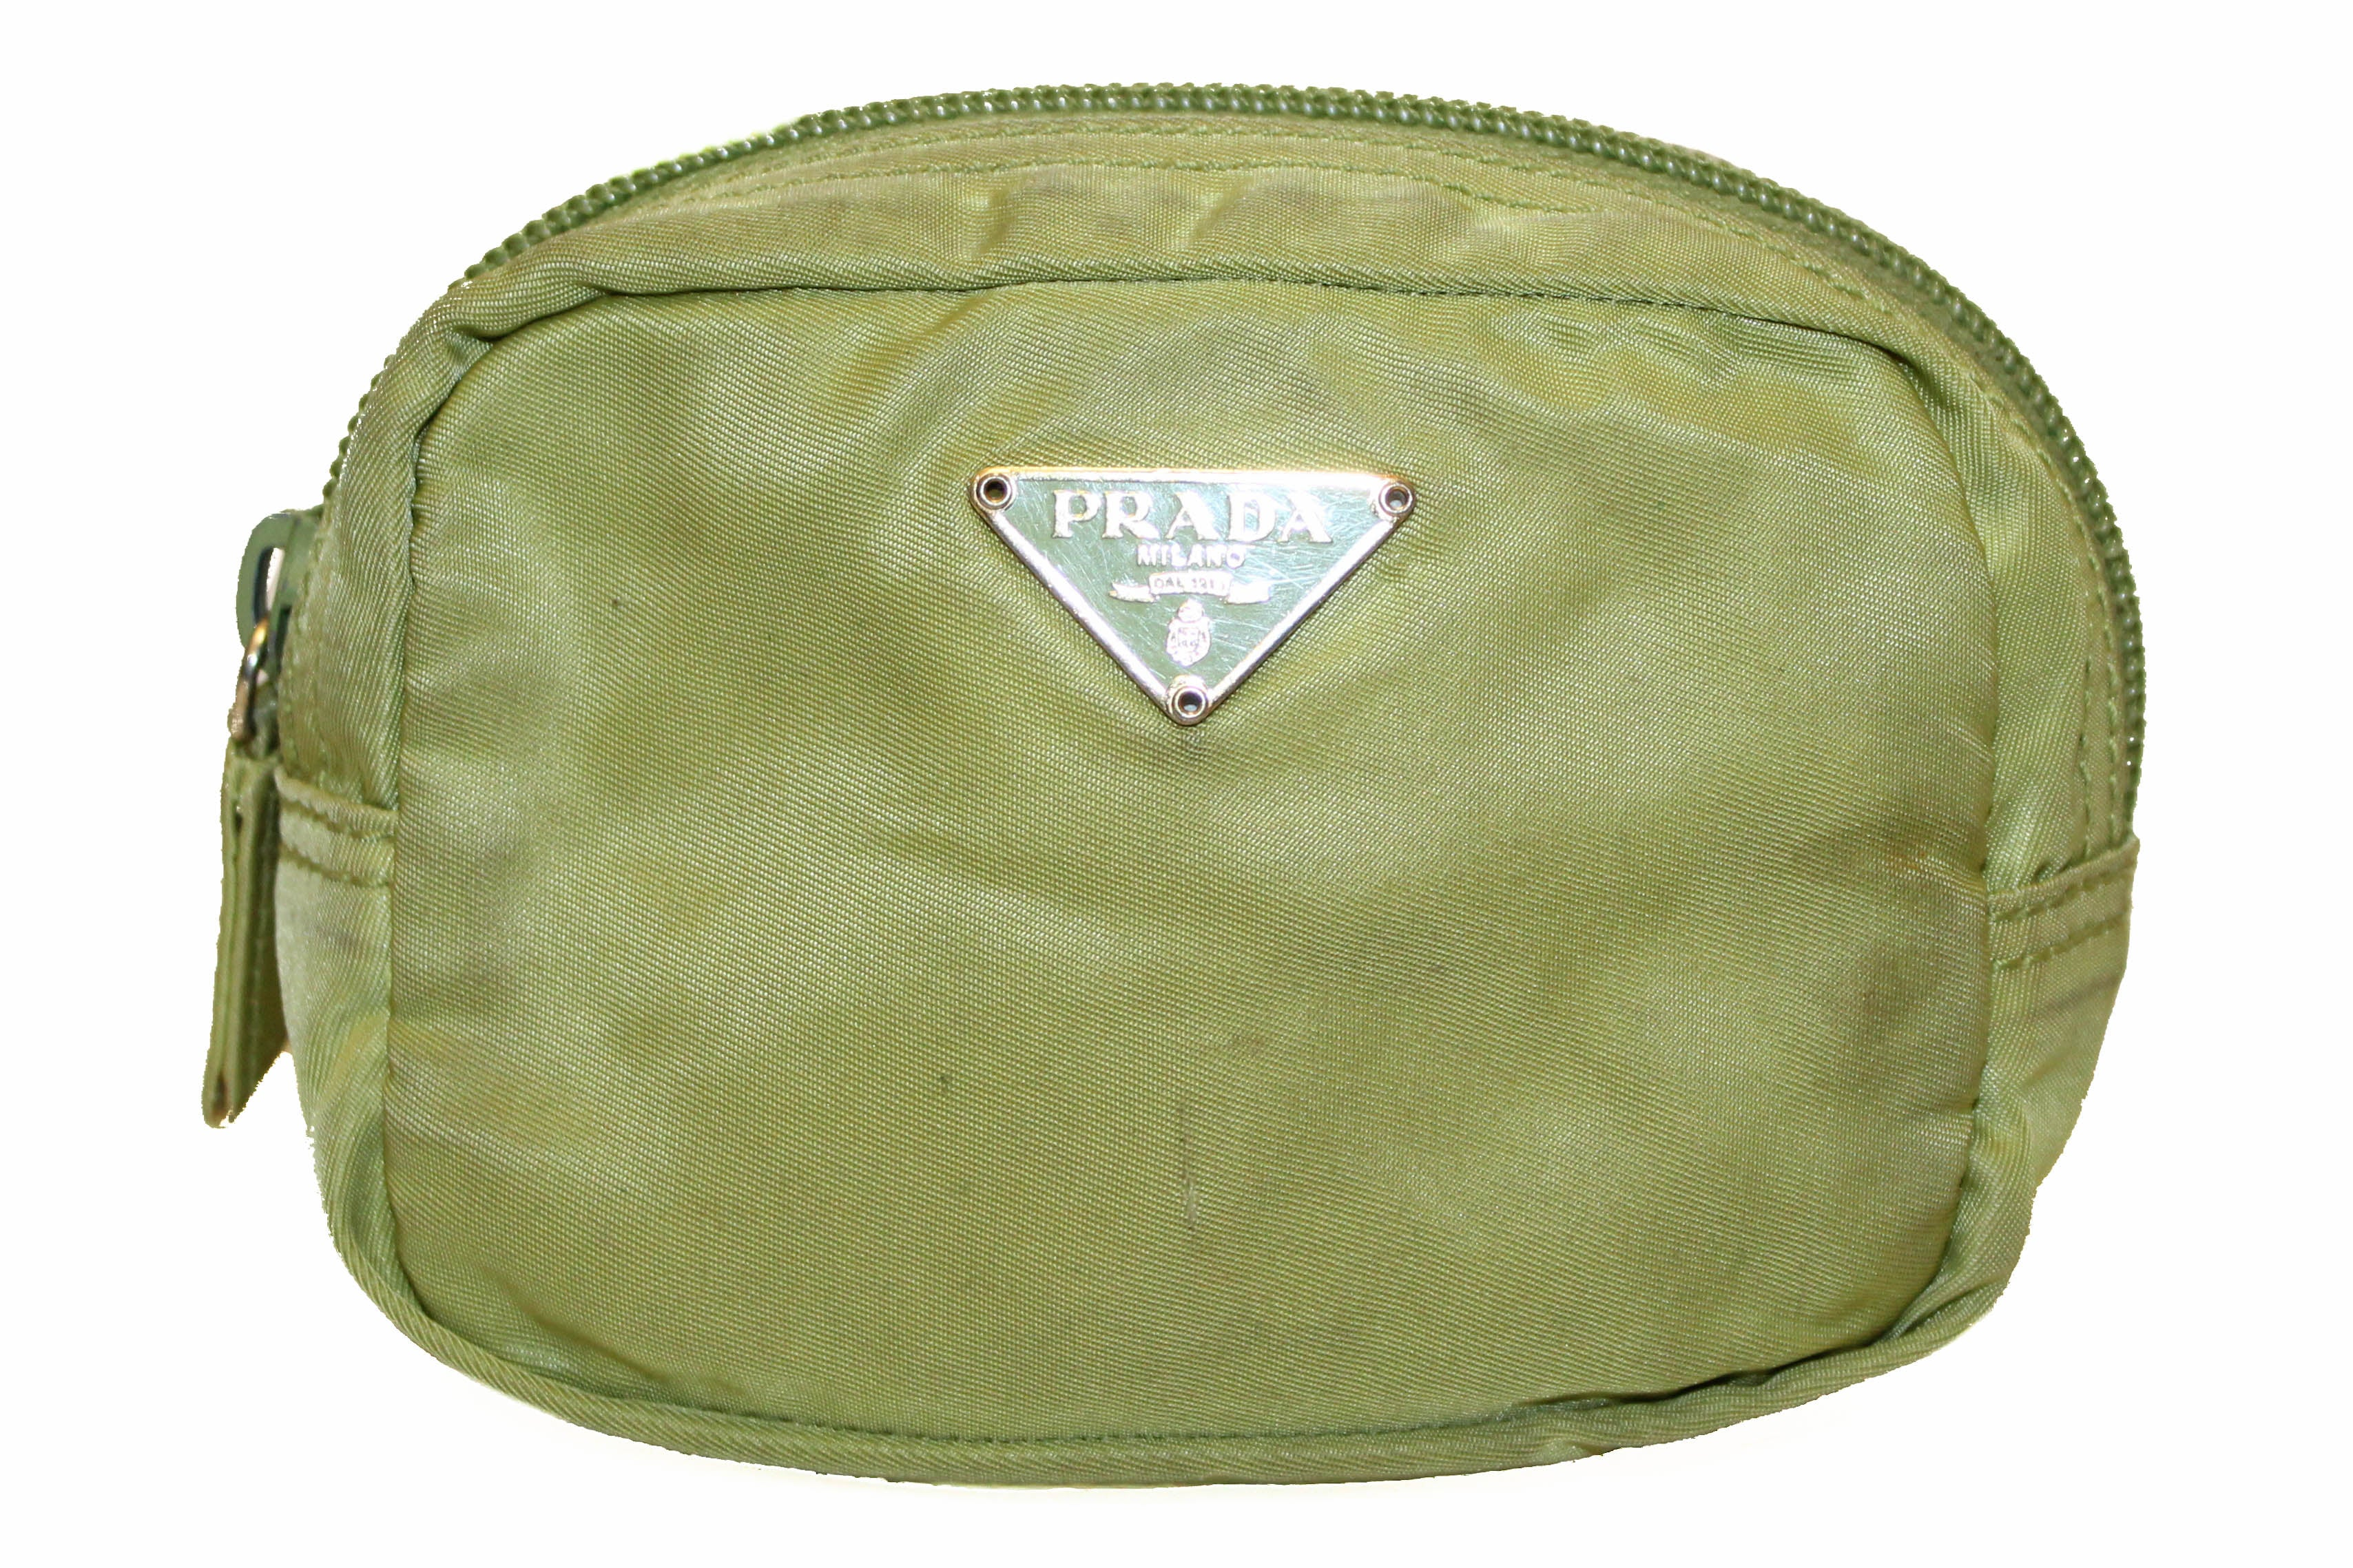 abb005498db2 Authentic Prada Green Nylon Small Cosmetic Pouch – Paris Station Shop